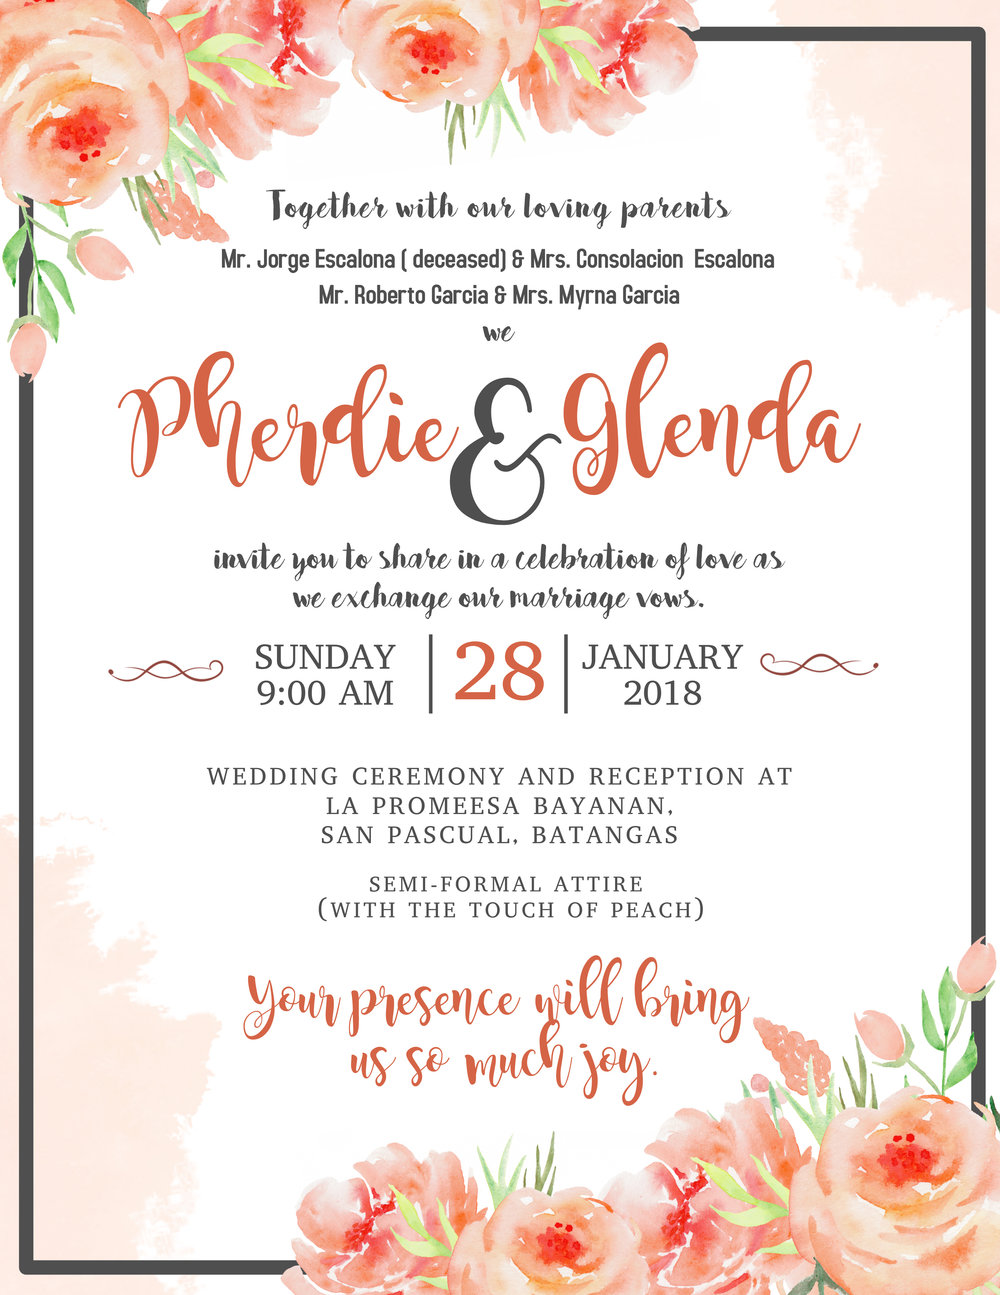 Wedding Save the date flyer